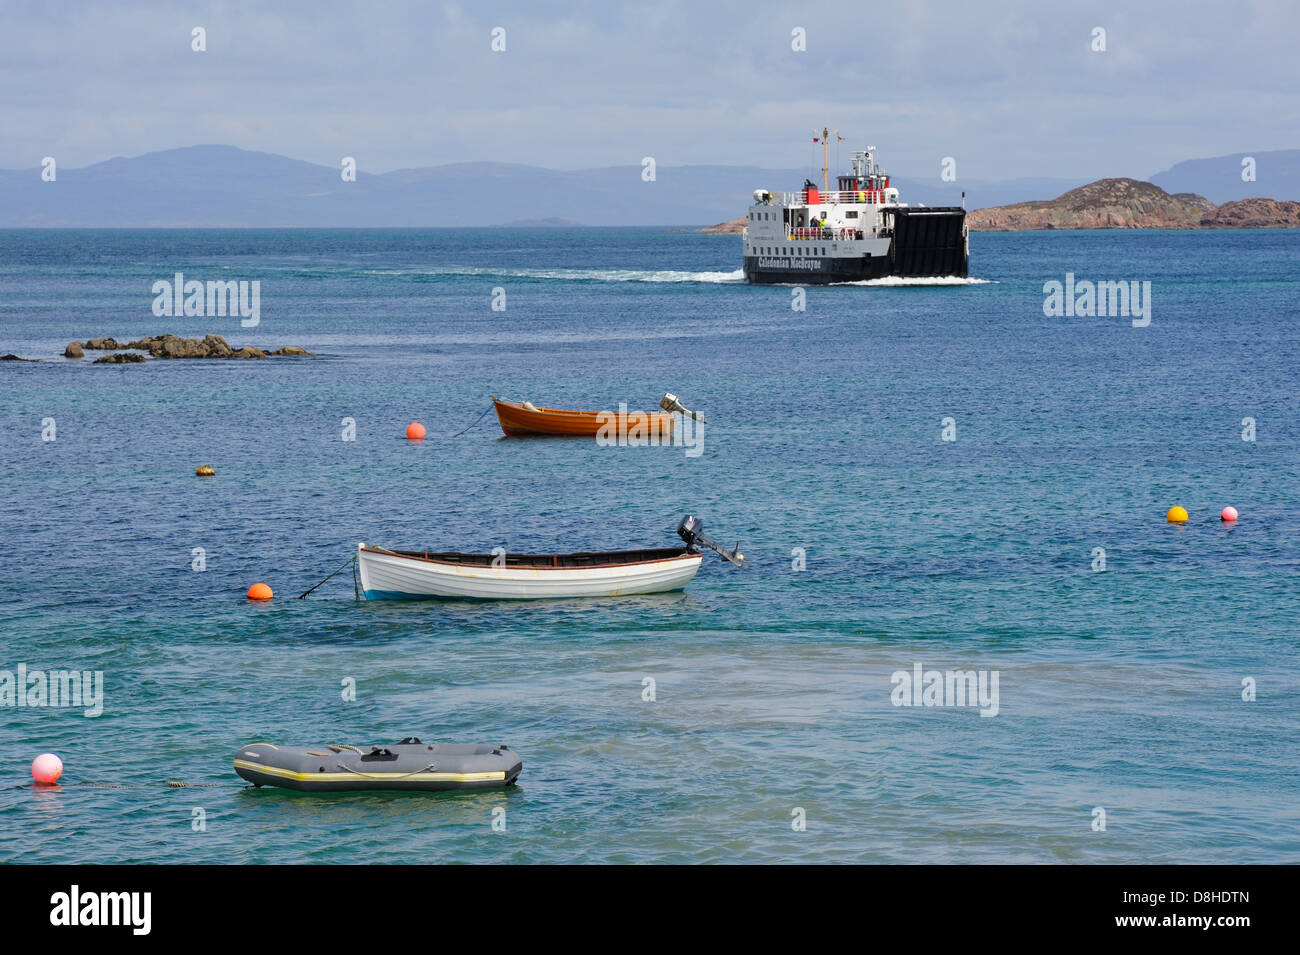 View across the sound of iona showing the calmac ferry bringing tourists and islanders across to the isle of iona - Stock Image